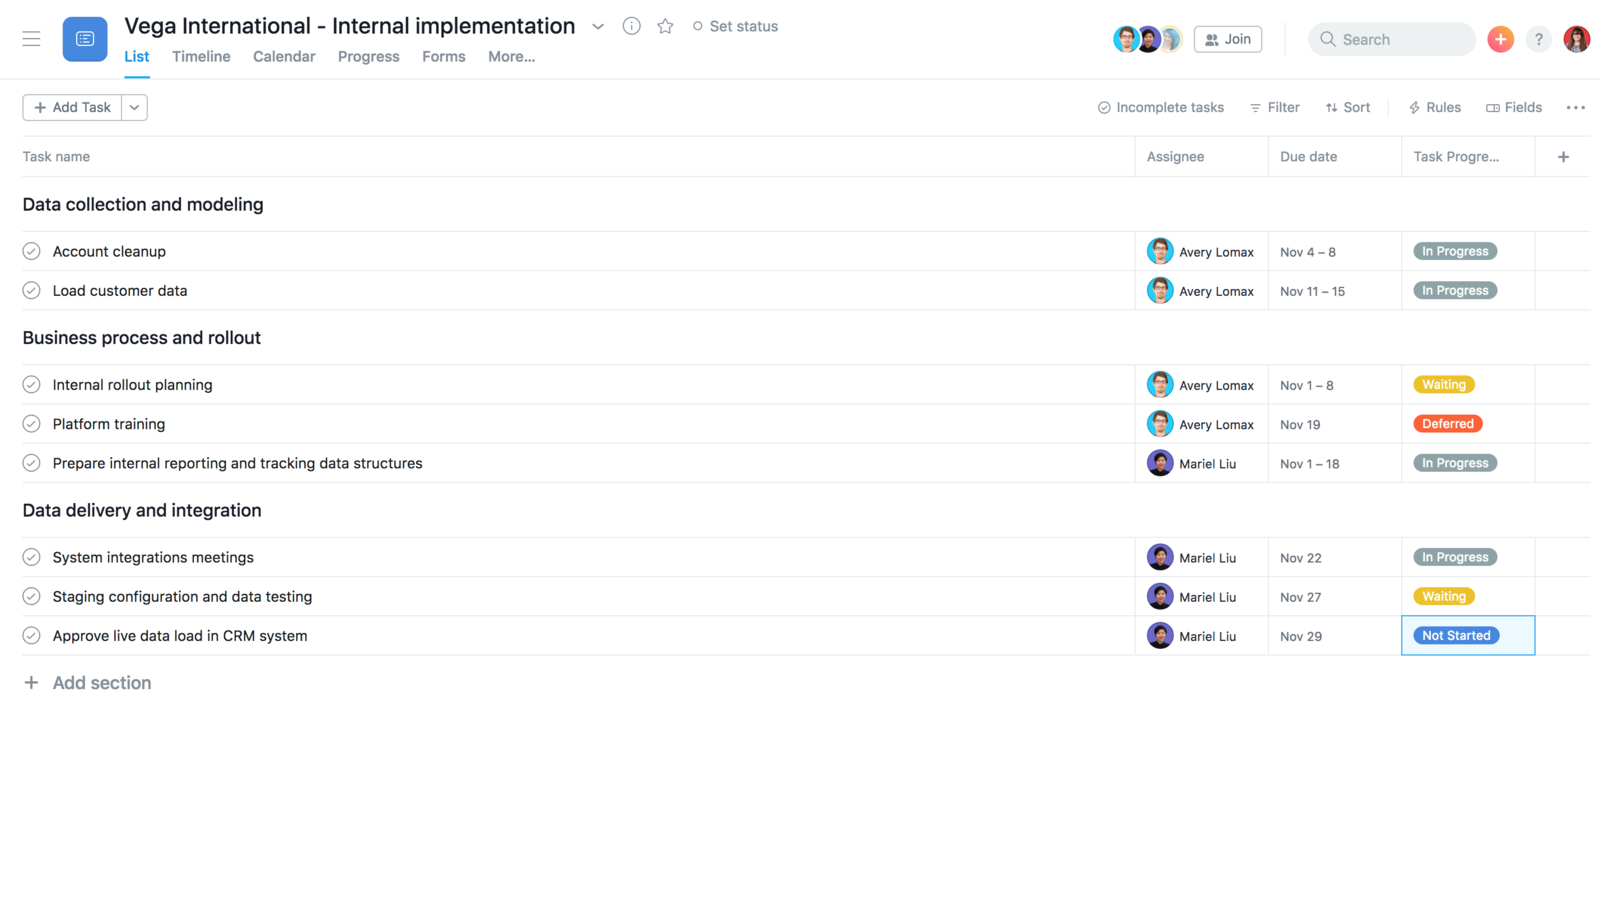 Create an internal implementation template in Asana to duplicate